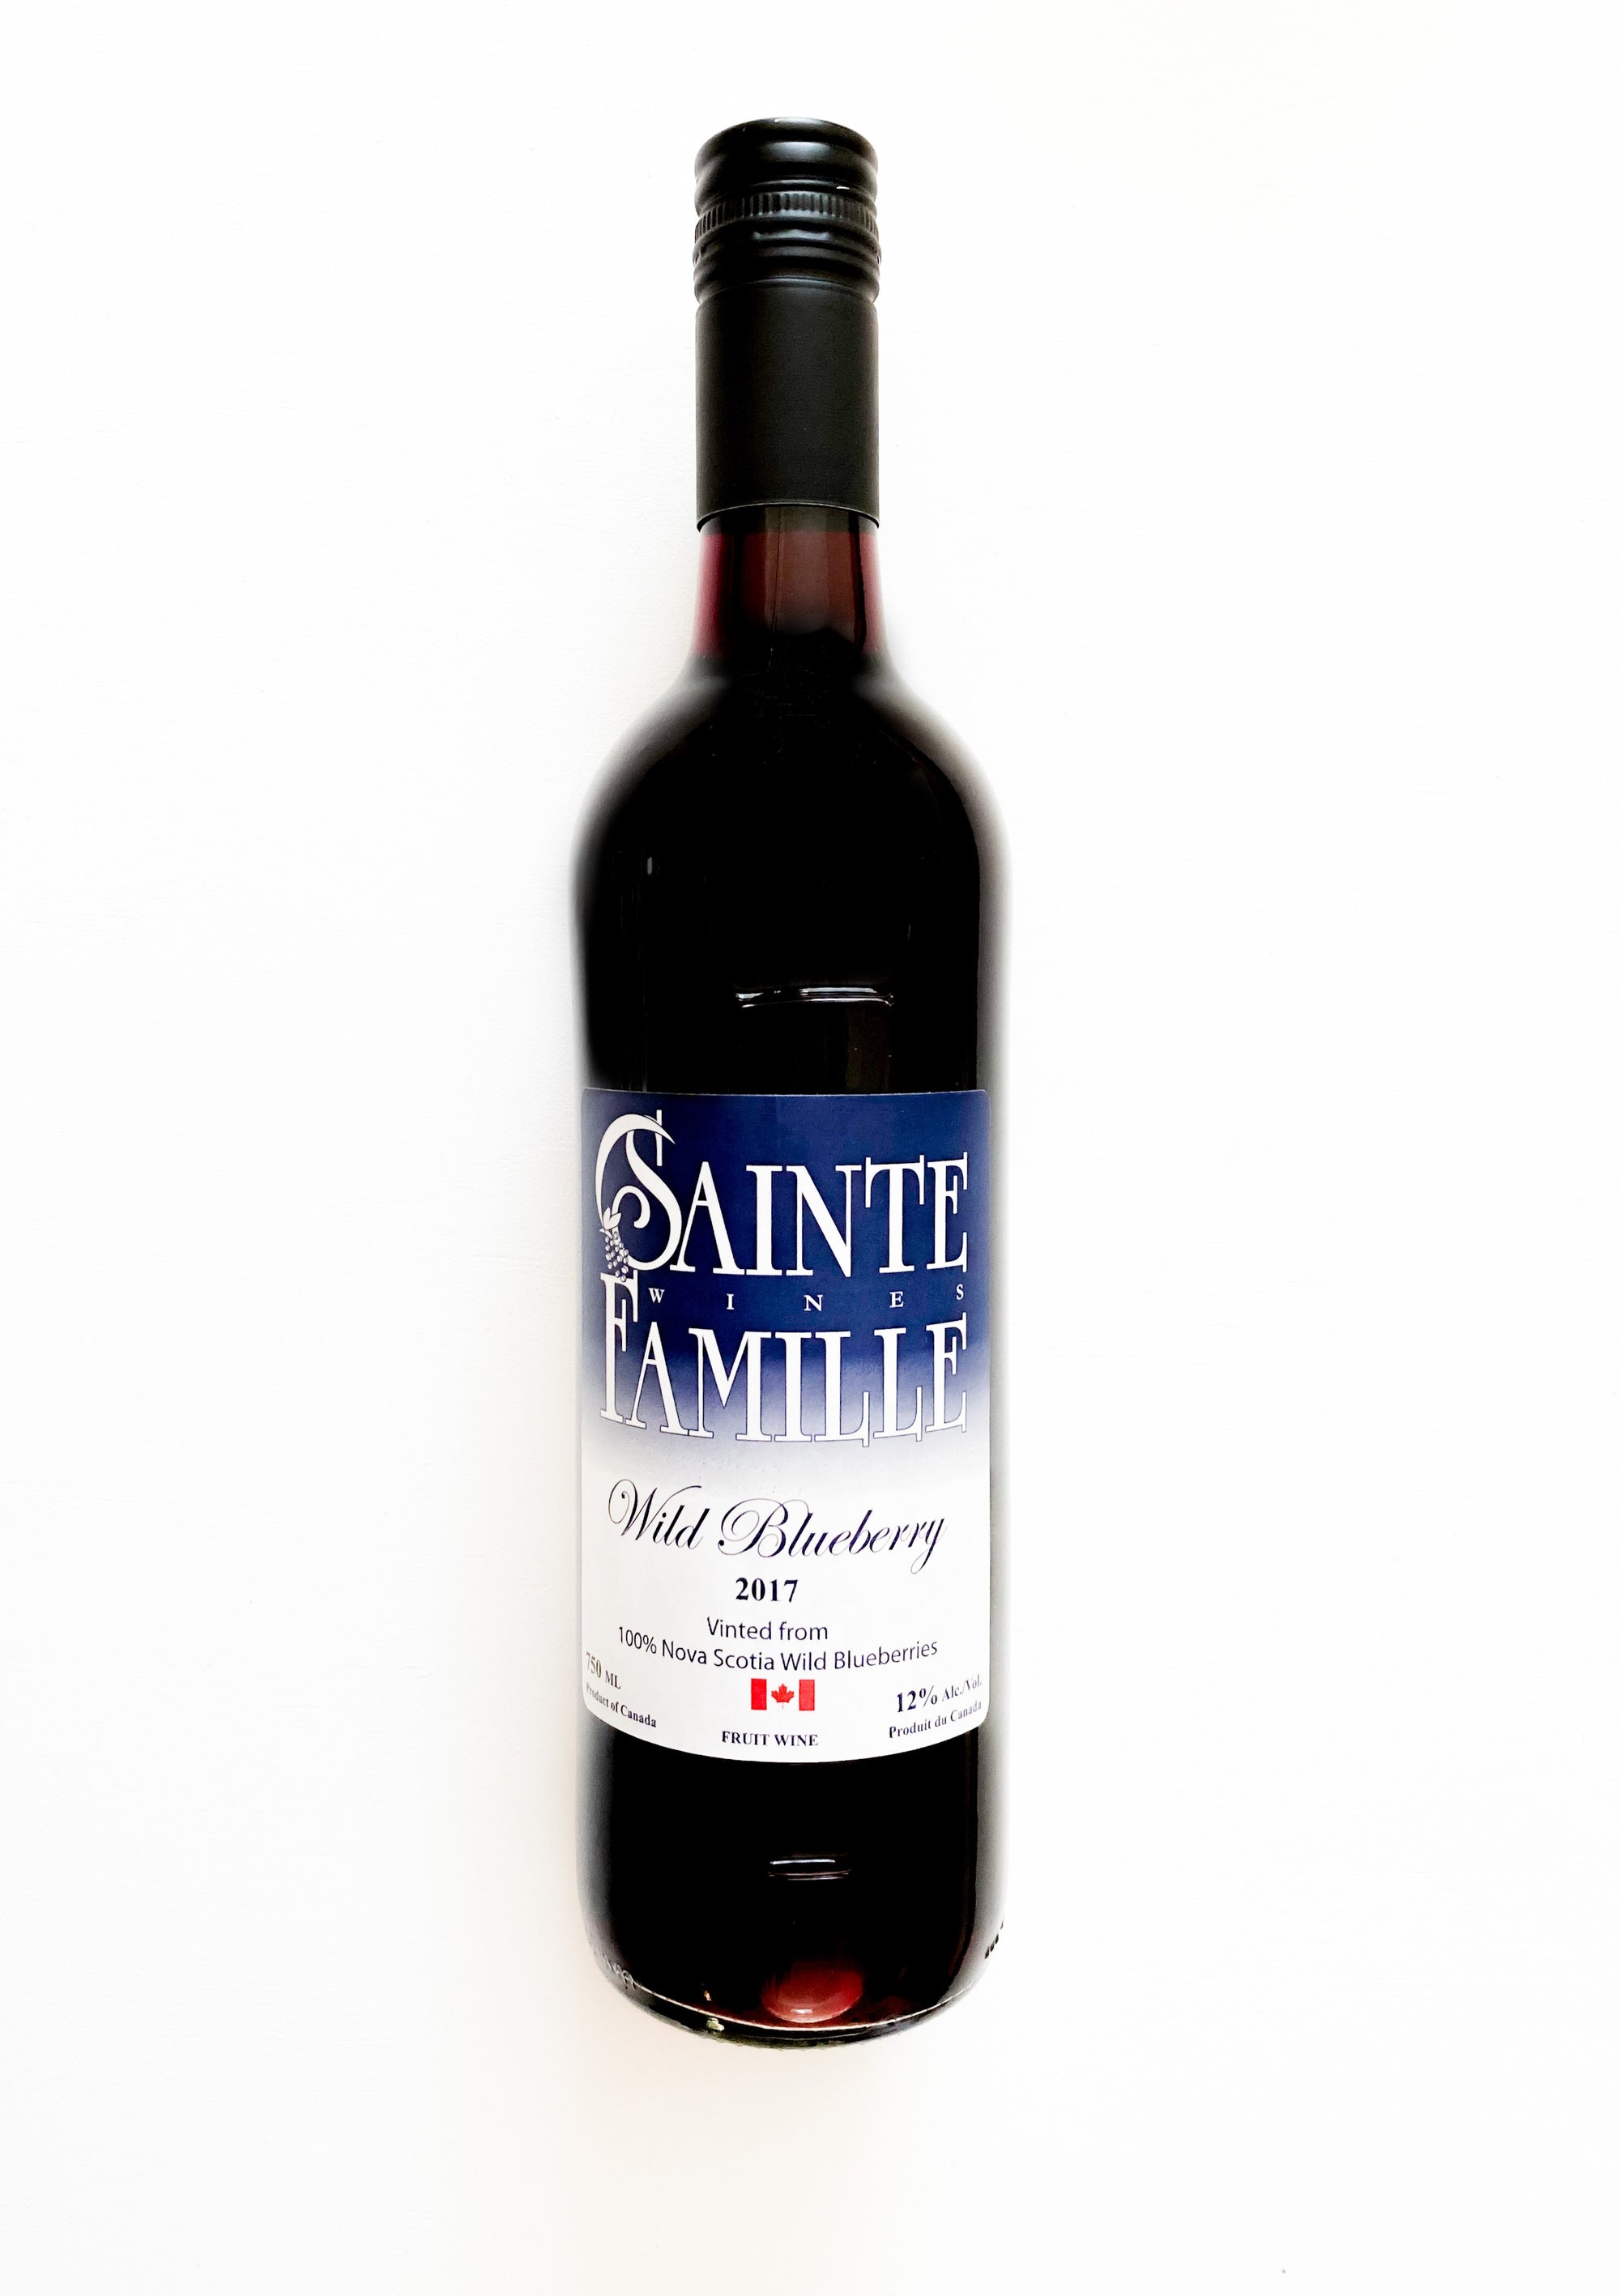 Bottle of Sainte-Famille Wild Blueberry wine.